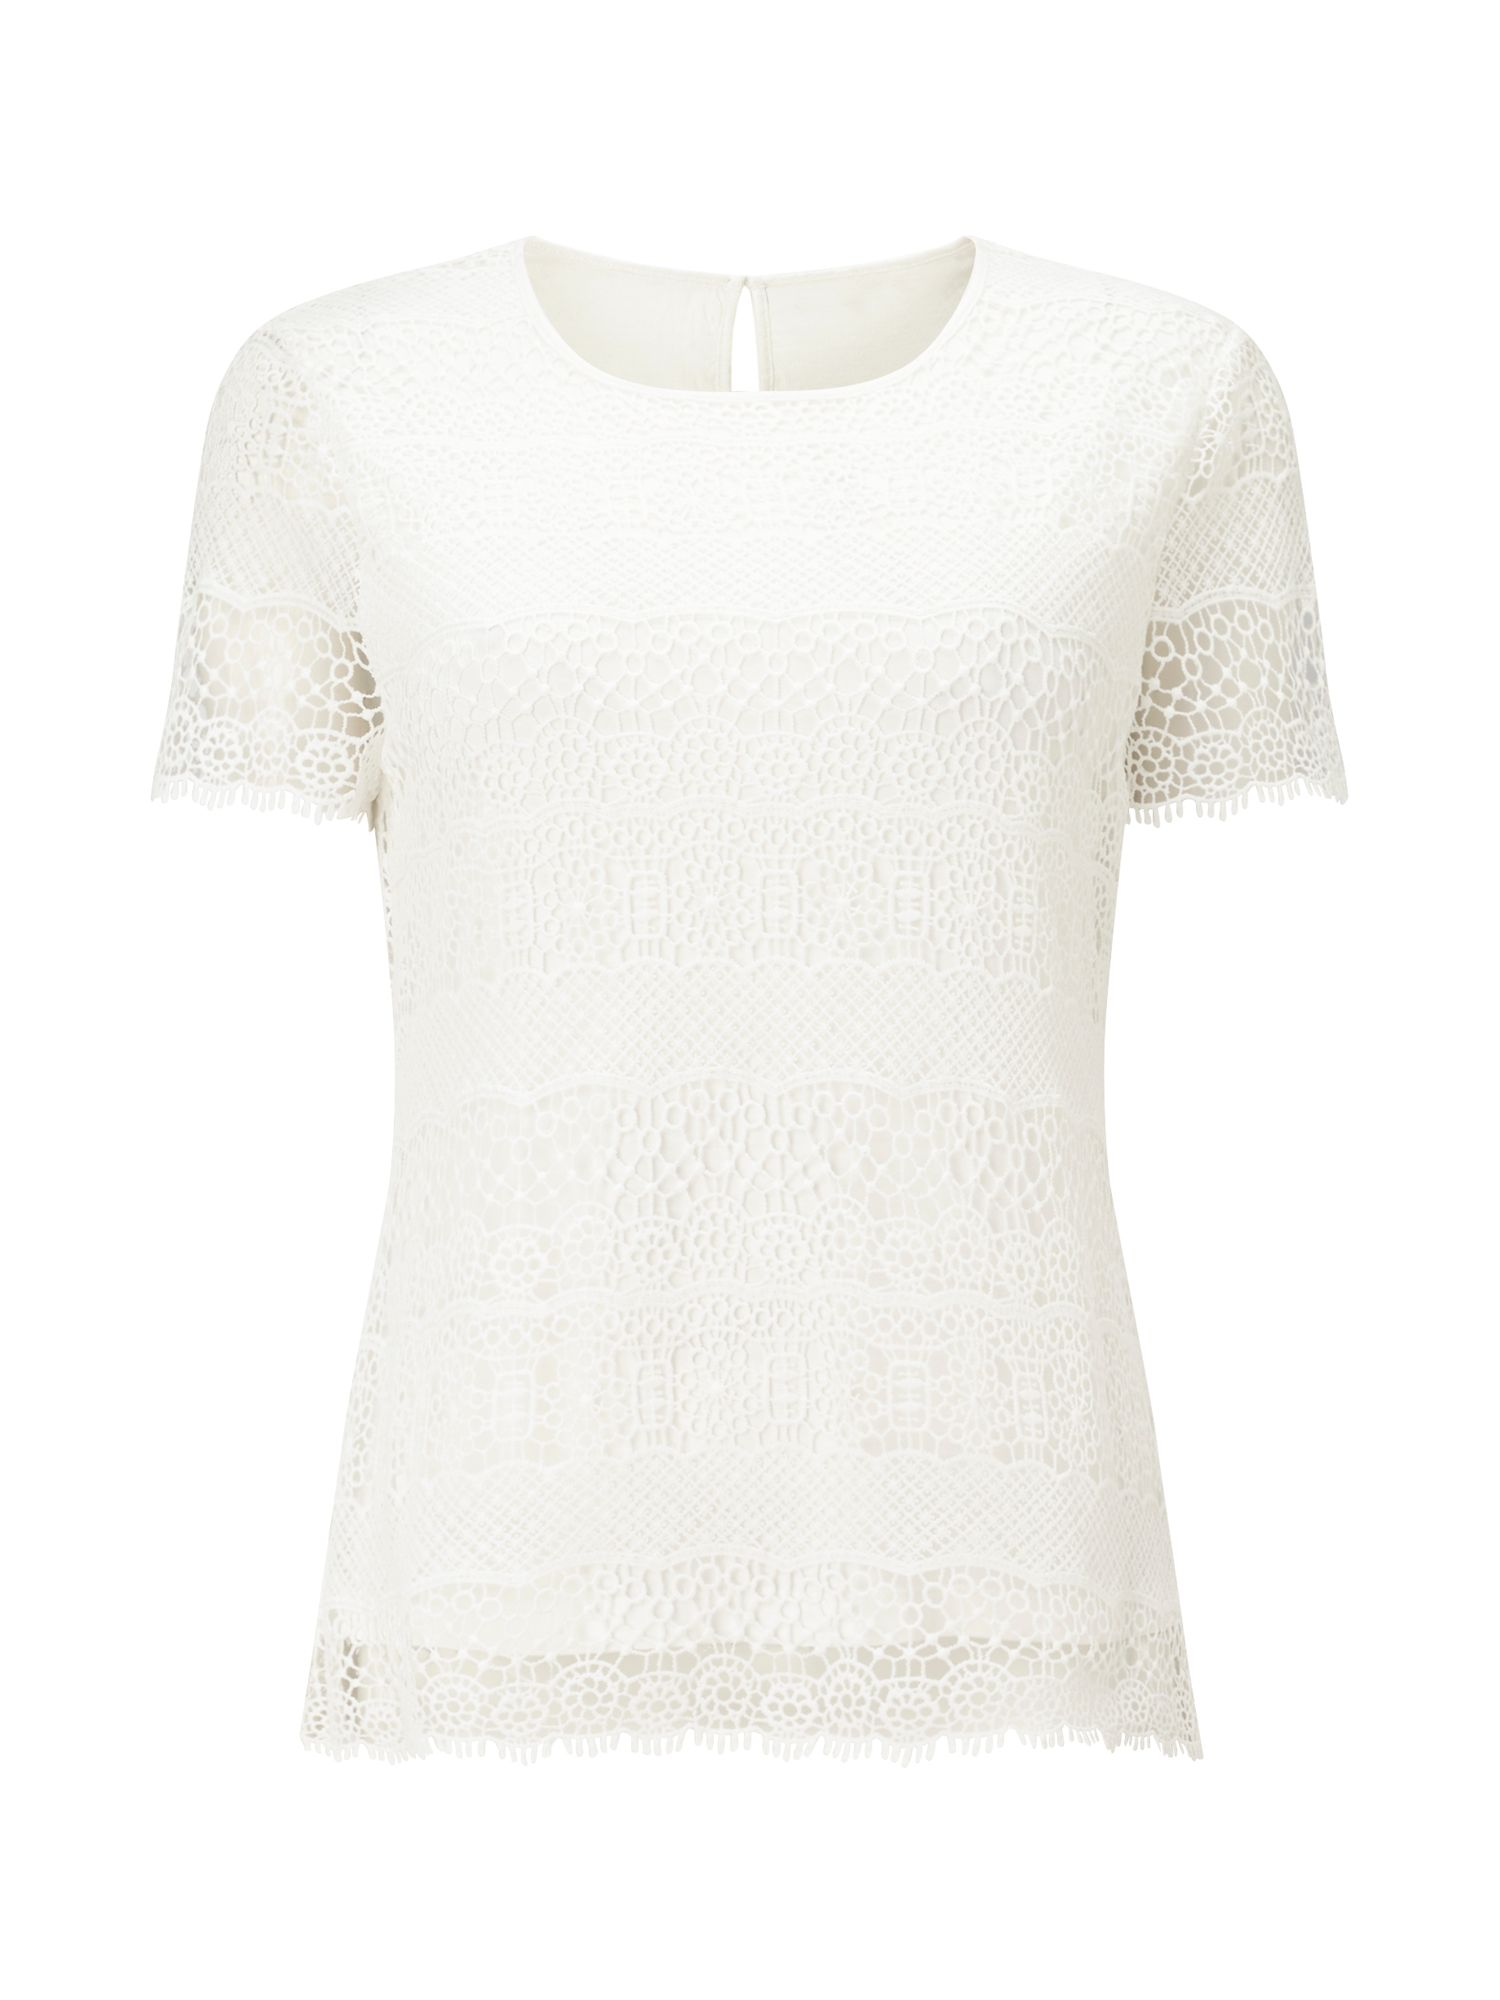 Precis Petite Petite Cotton Stripe Lace Top, White